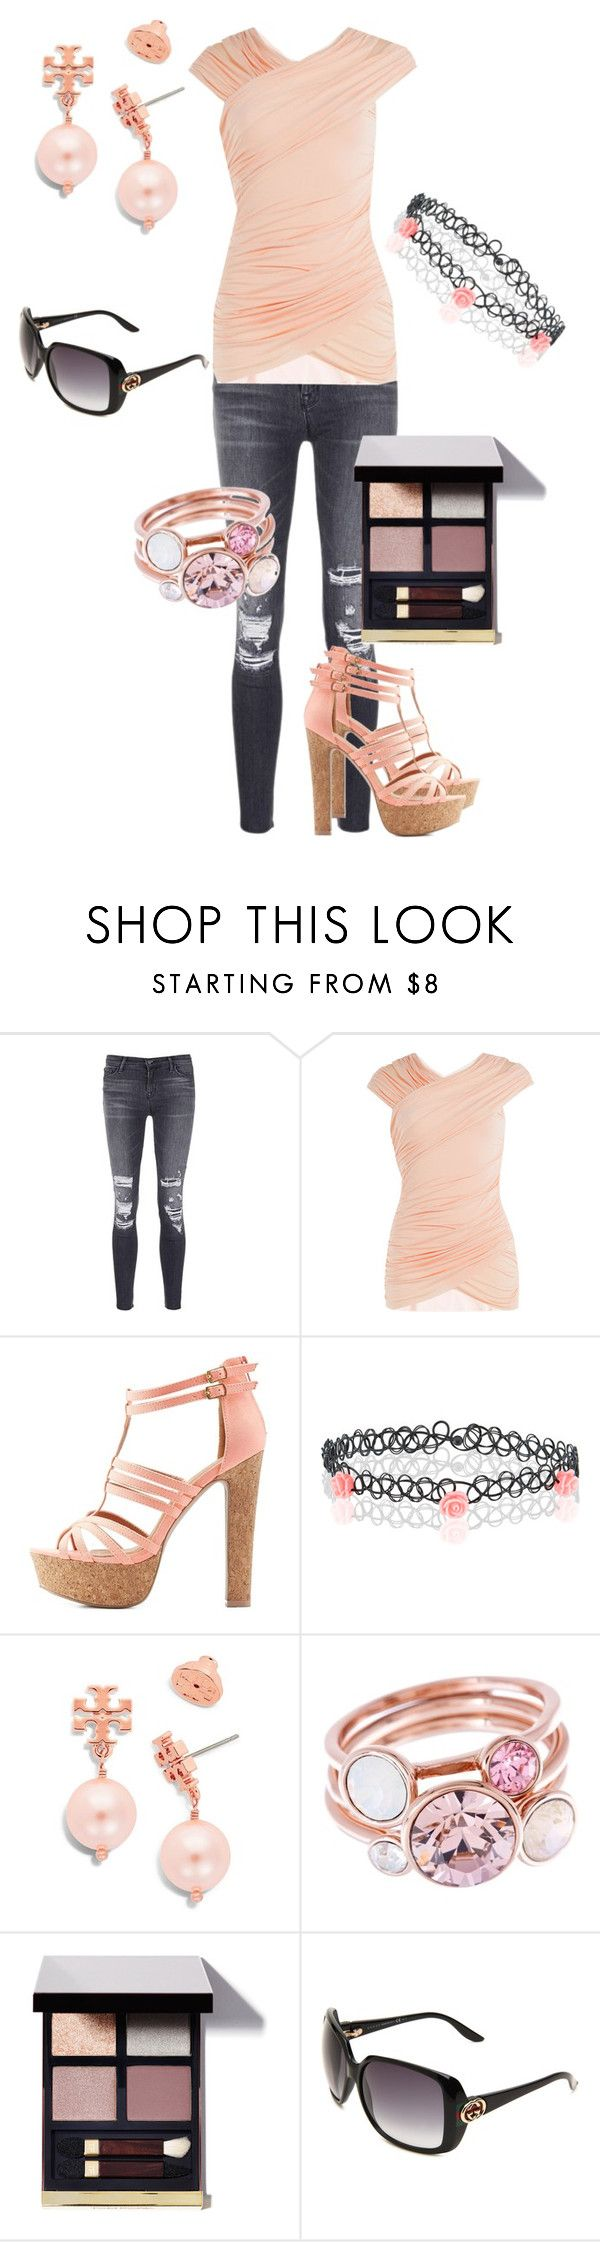 """""""Spring is in the Air"""" by melissa-carr91 ❤ liked on Polyvore featuring J Brand, Bailey 44, Charlotte Russe, Accessorize, Tory Burch, Ted Baker, Tom Ford and Gucci"""